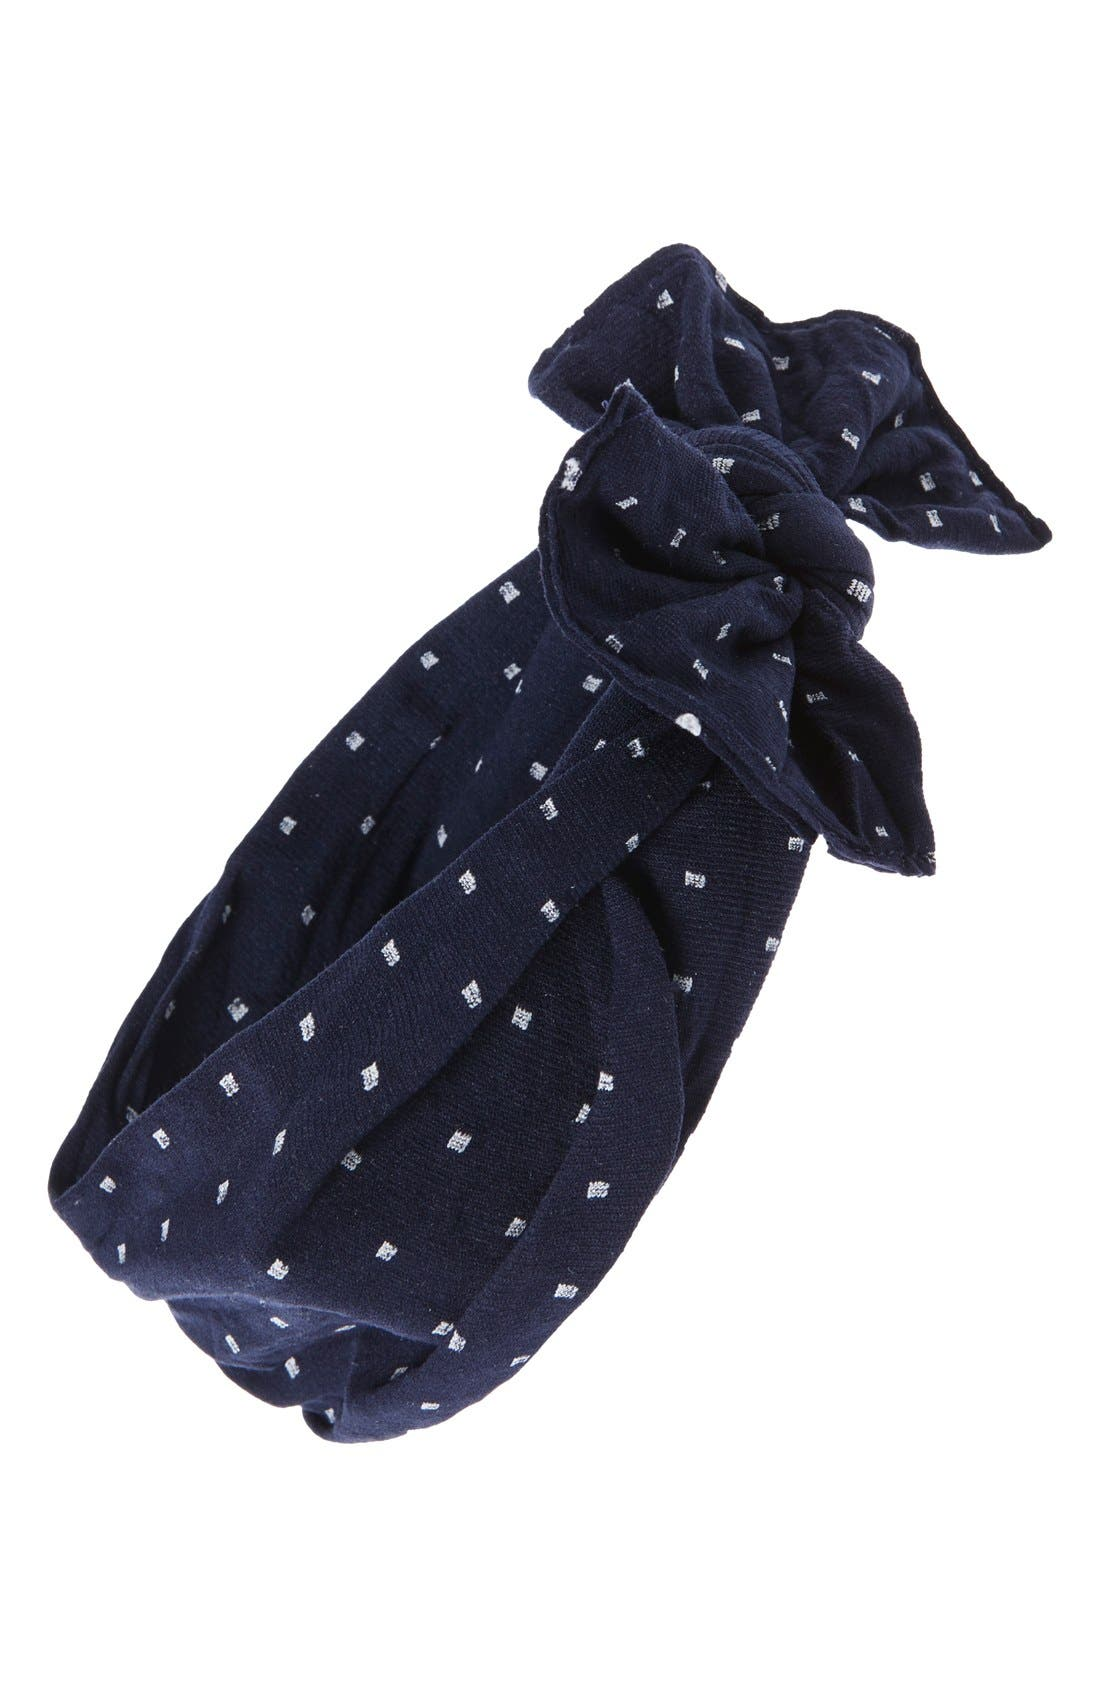 BABY BLING 'Dot Knot' Head Wrap, Main, color, NAVY/ WHITE DOT